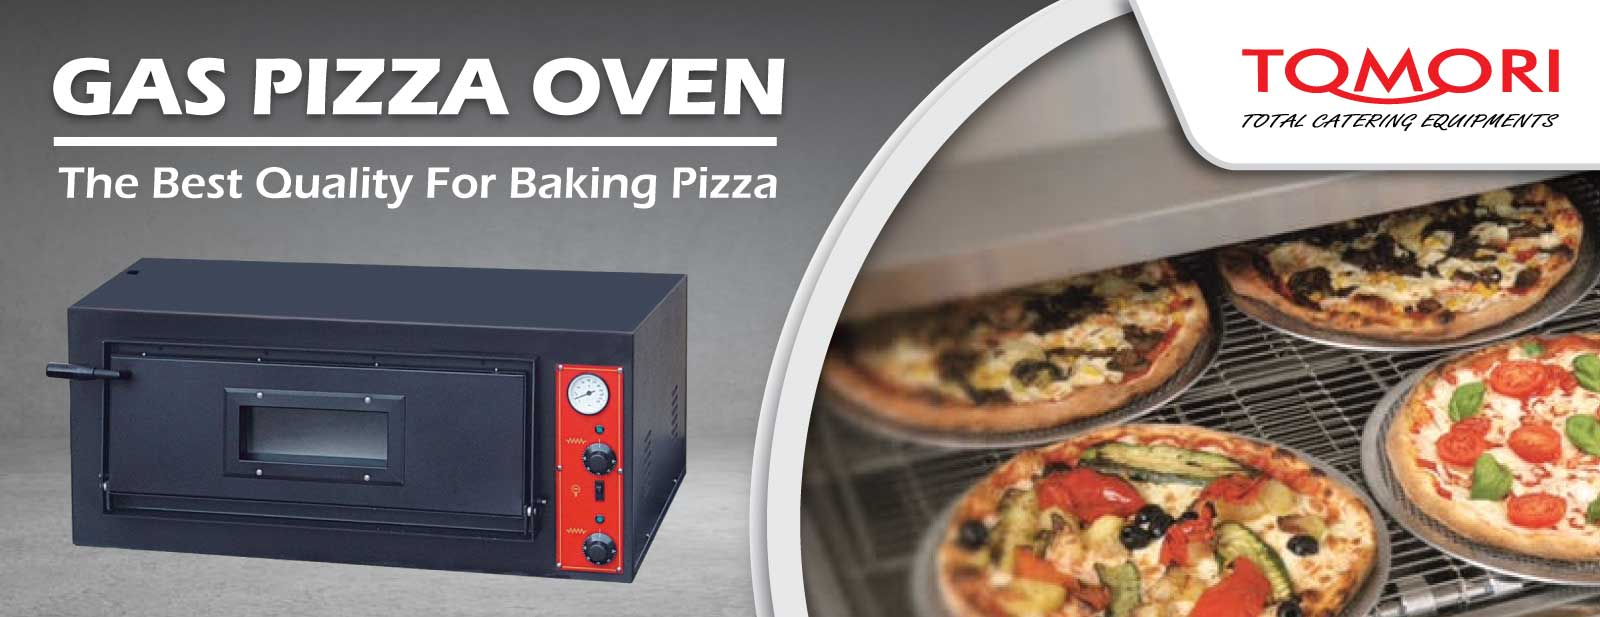 Banner Gas Pizza Oven